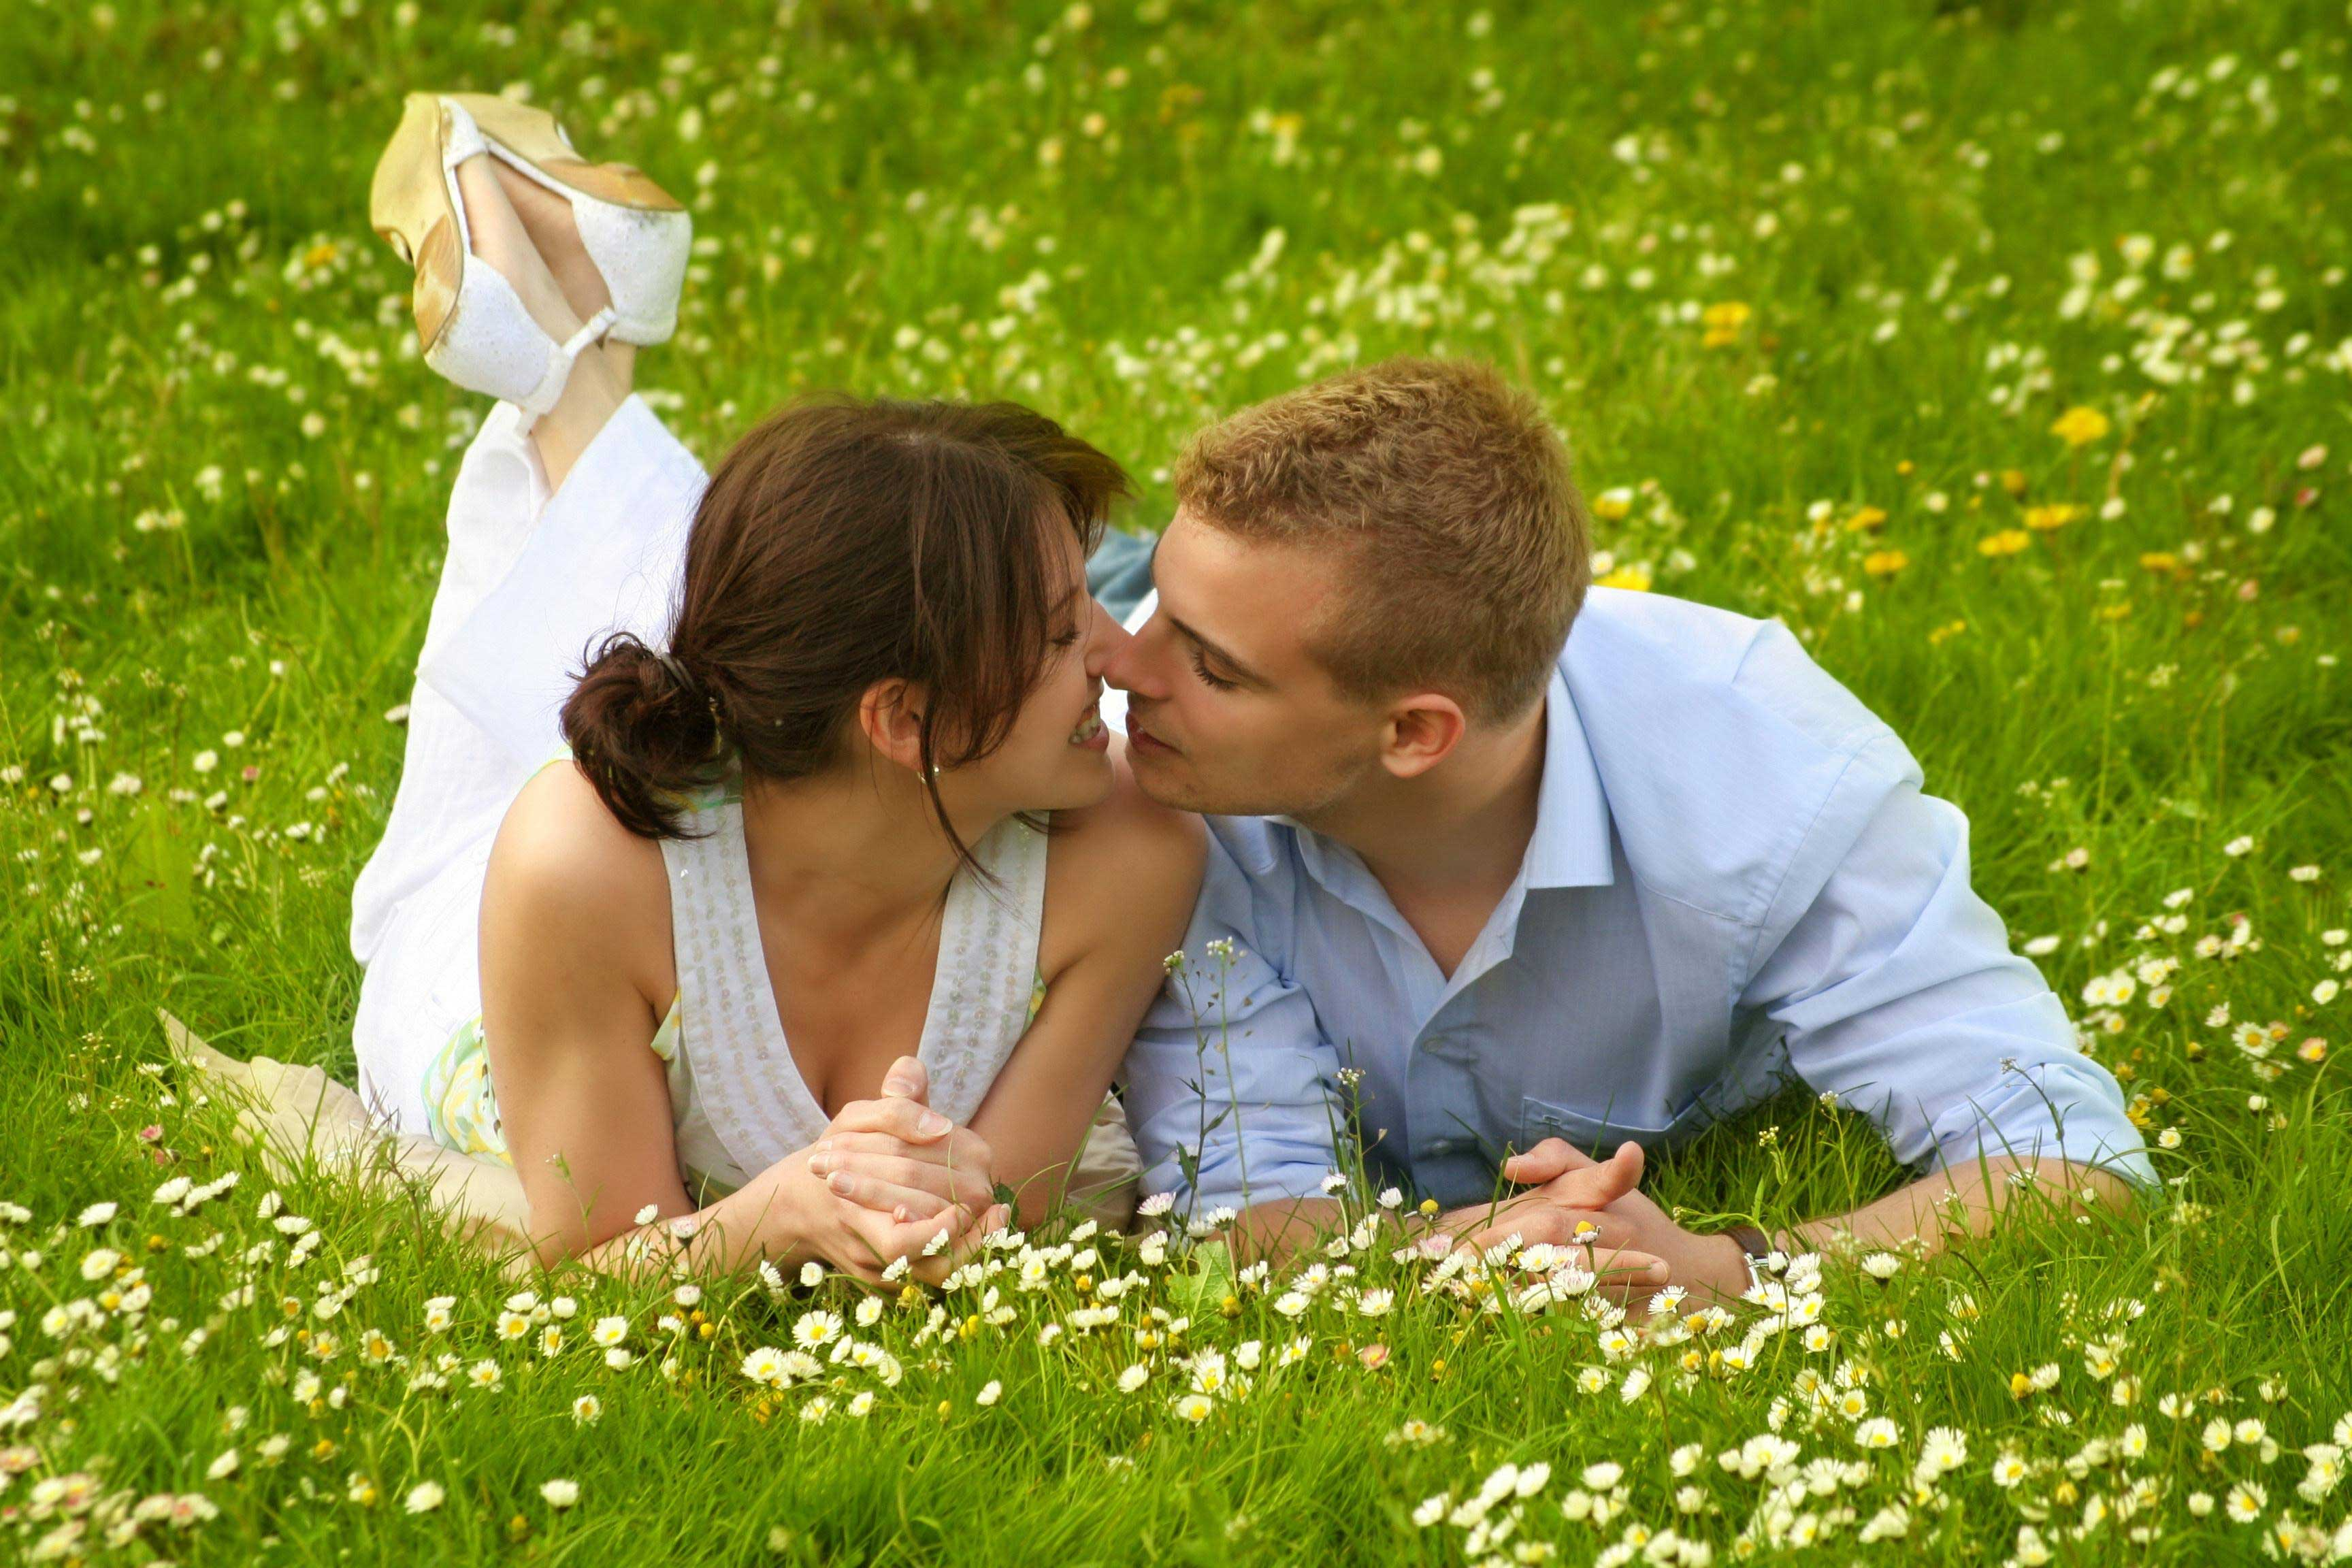 Romantic Love Whatsapp Dp Profile Images Pics Free Download